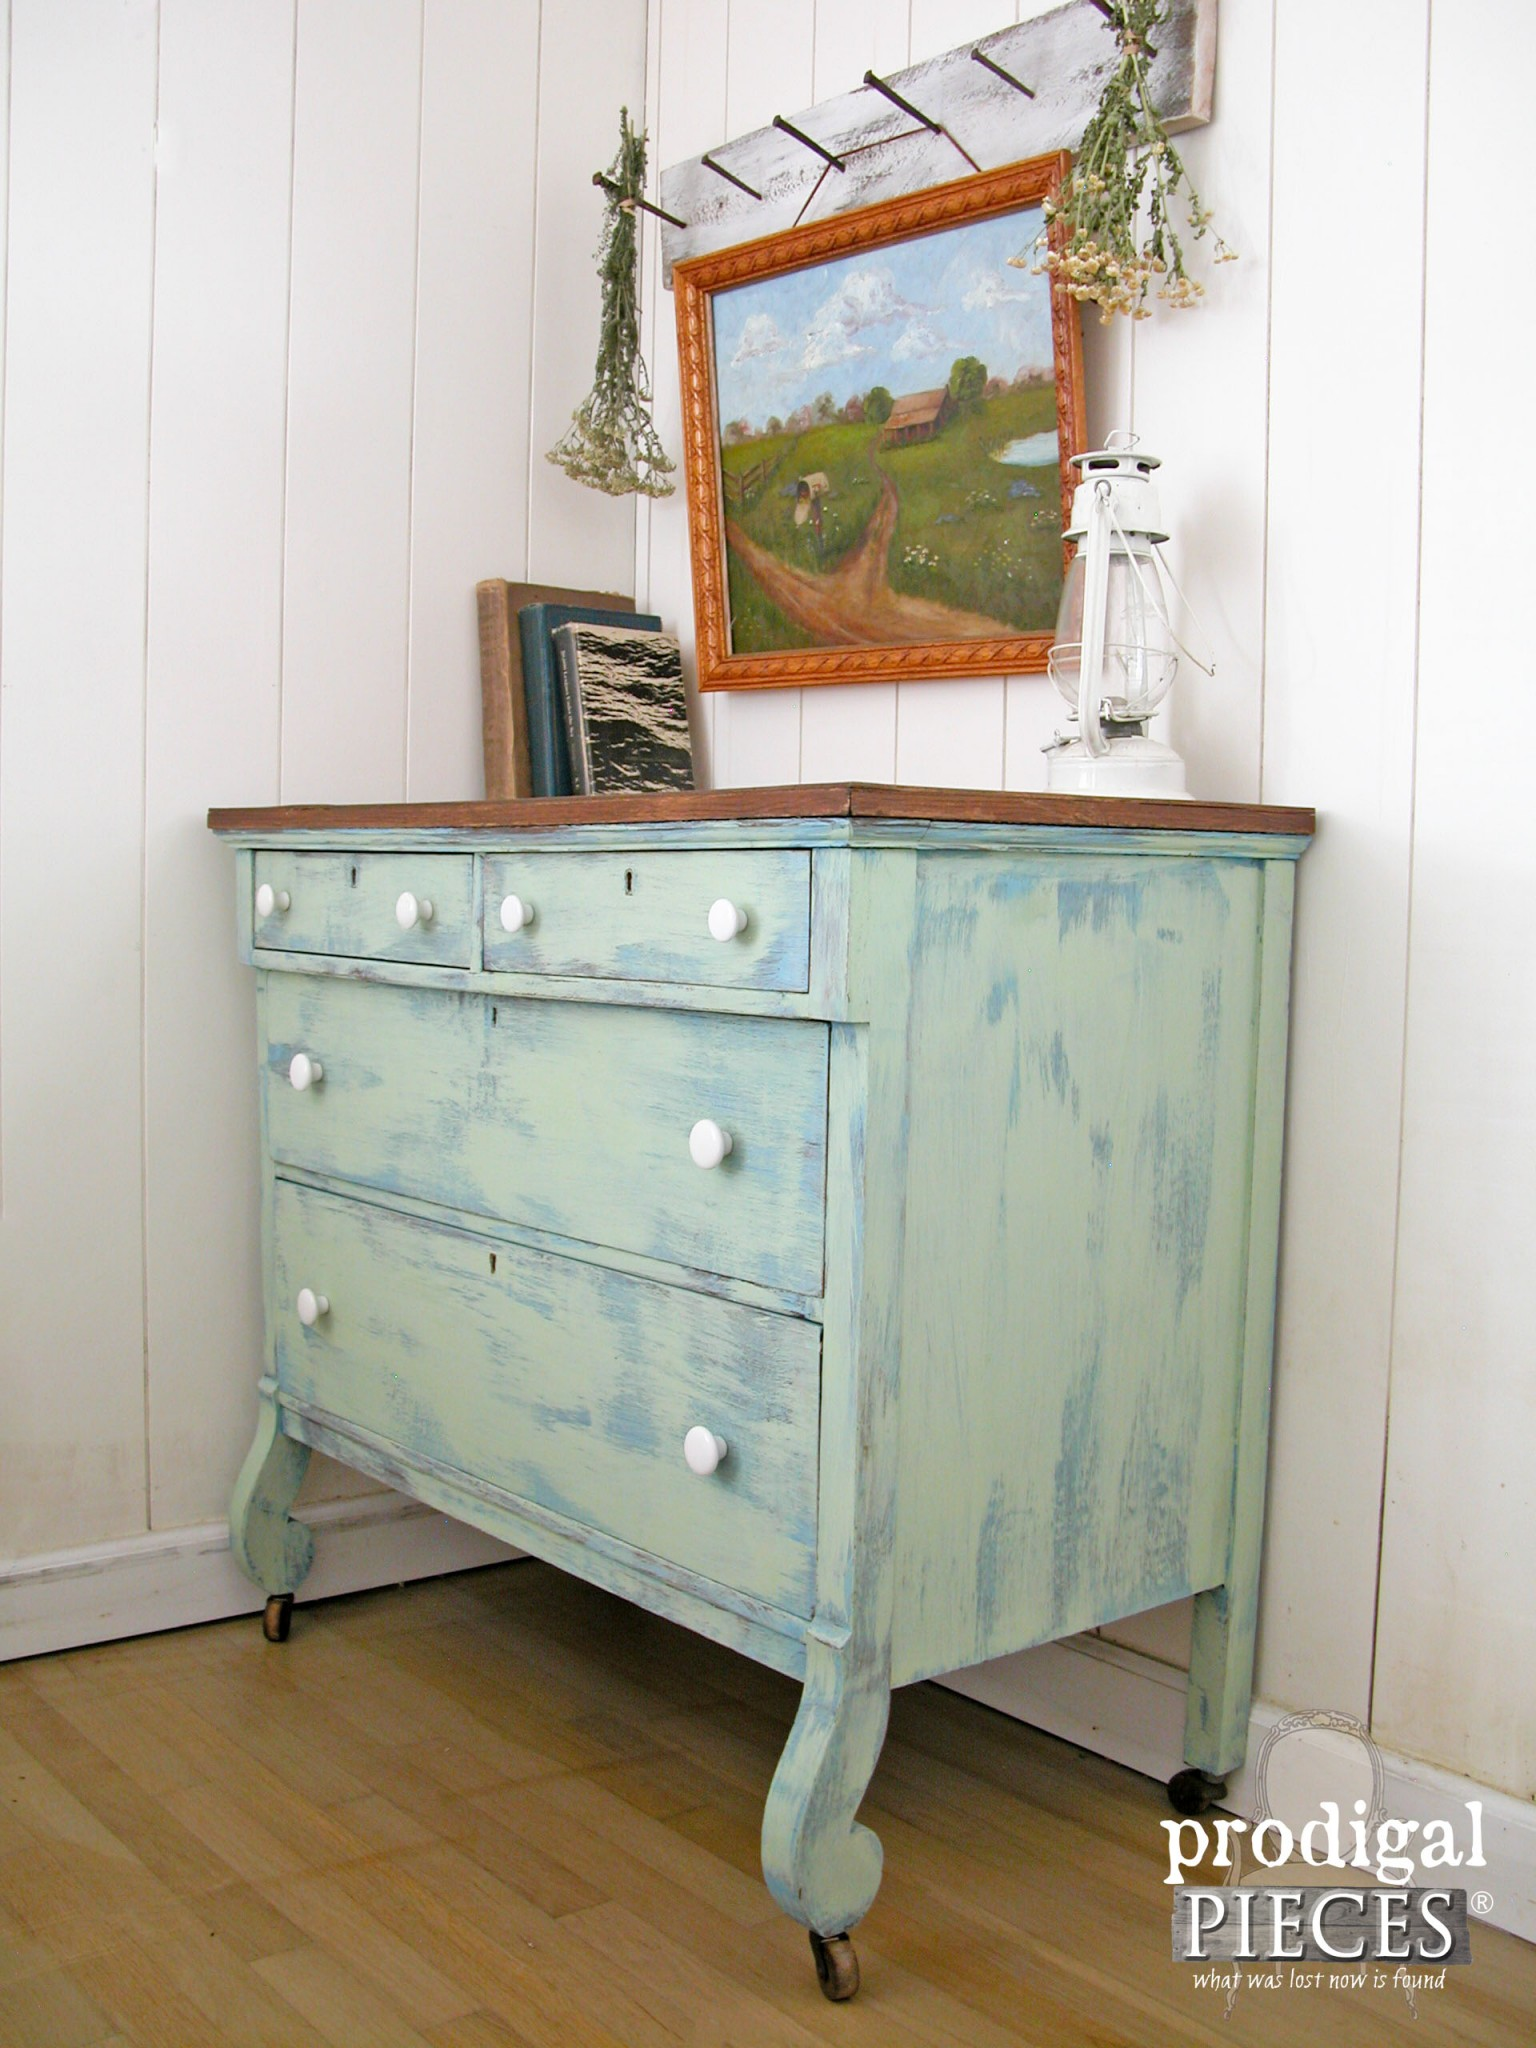 Summertime Sky Farmhouse Dresser by Prodigal Pieces | www.prodigalpieces.com